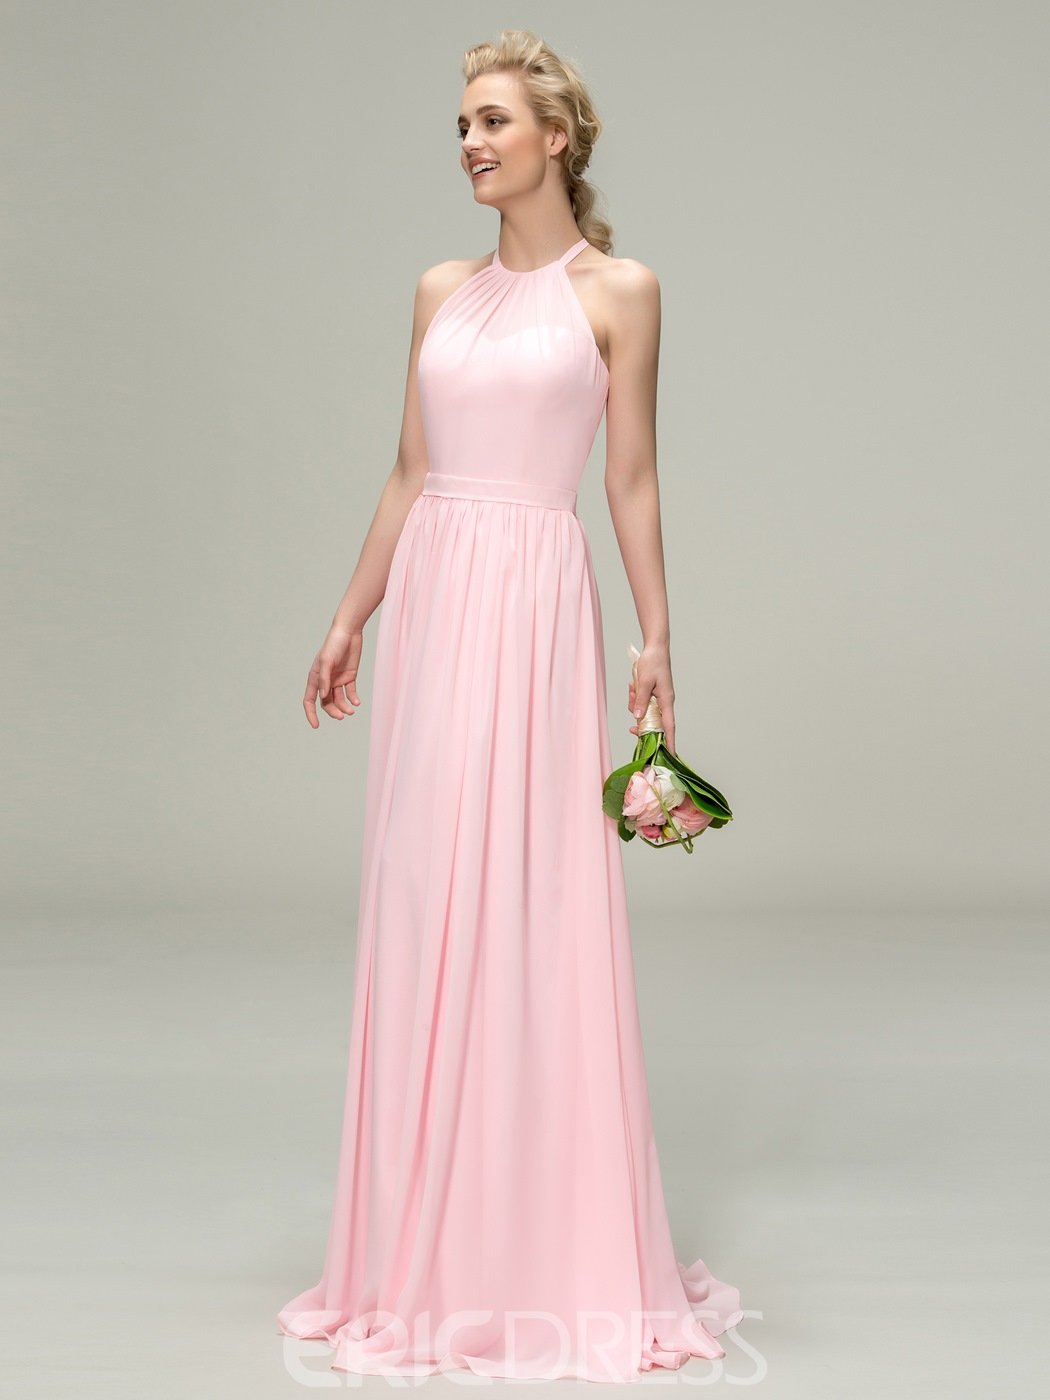 Simple Halter Ruched A-Line Zipper-Up Bridesmaid Dress